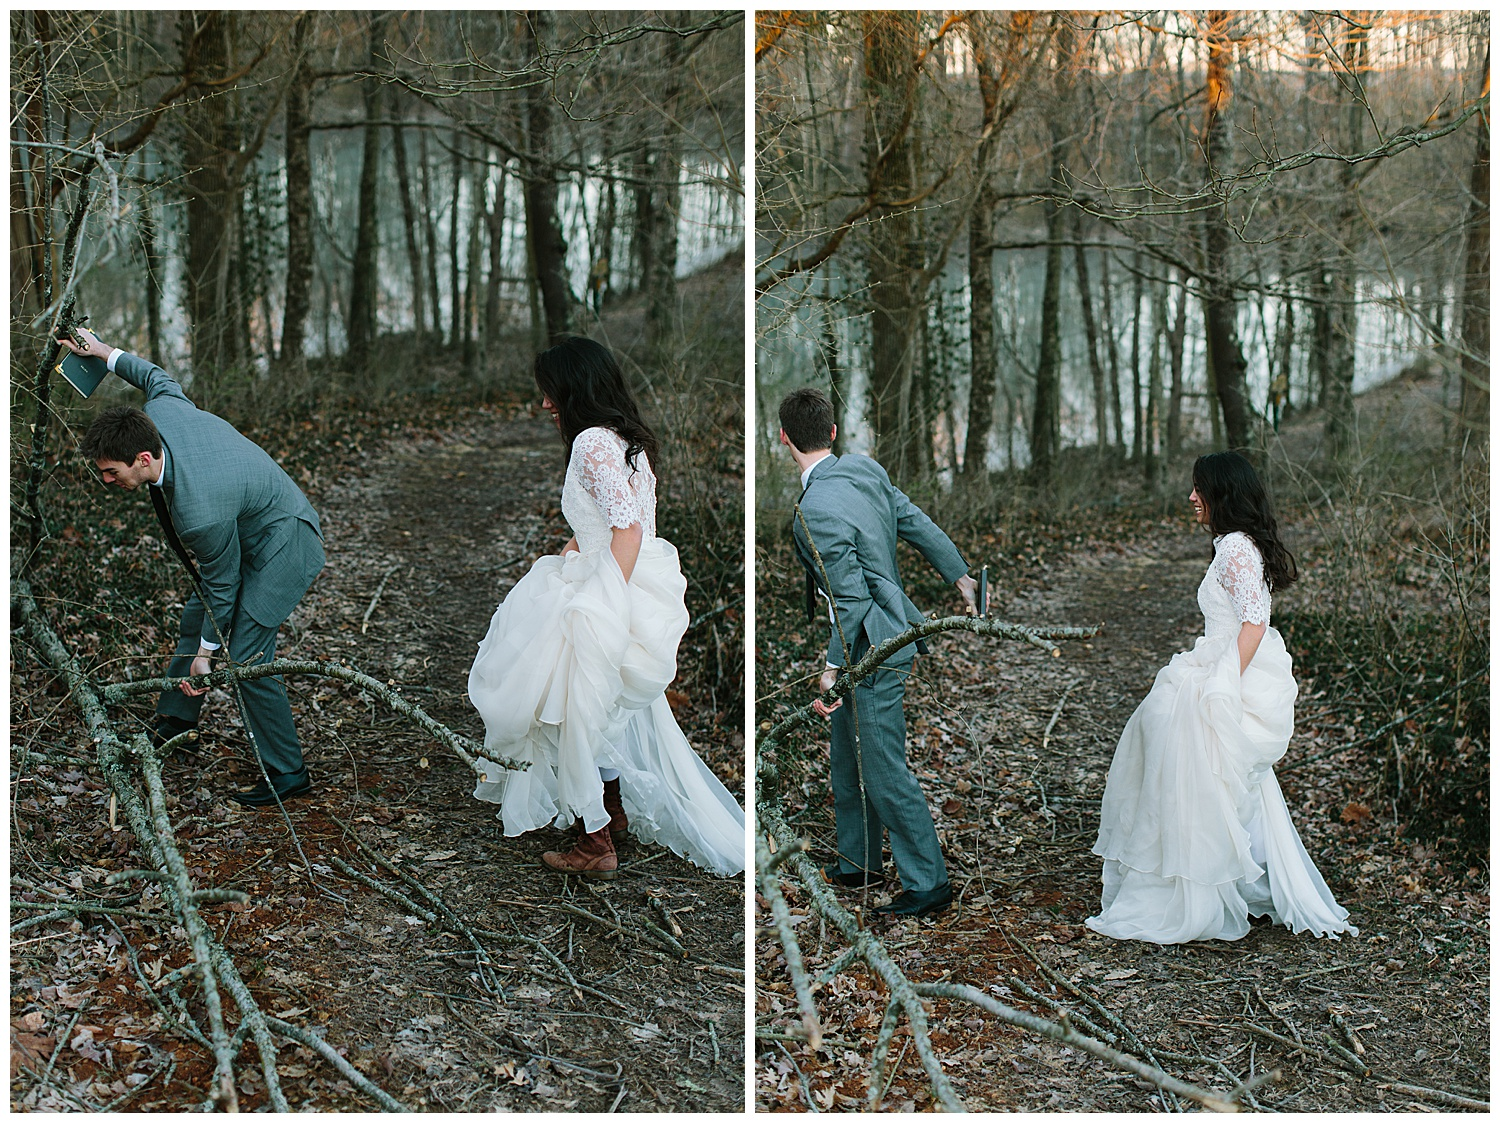 trent.and.kendra.photography.foxhollow.farm.elopement-30.jpg